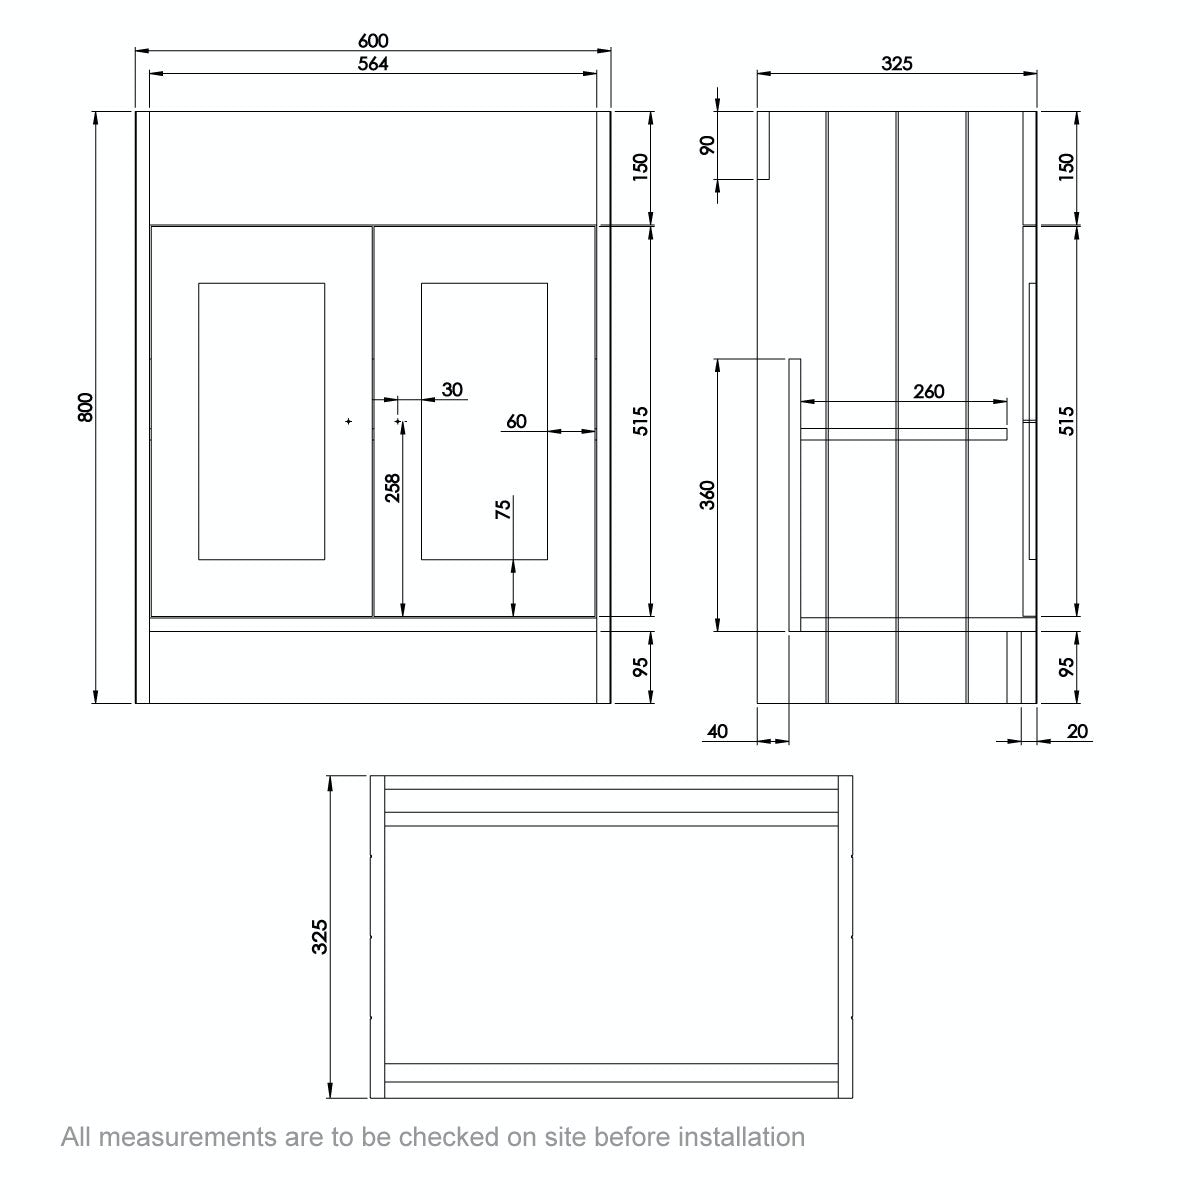 Dimensions for The Bath Co. Dulwich stone ivory semi recessed vanity with basin 600mm